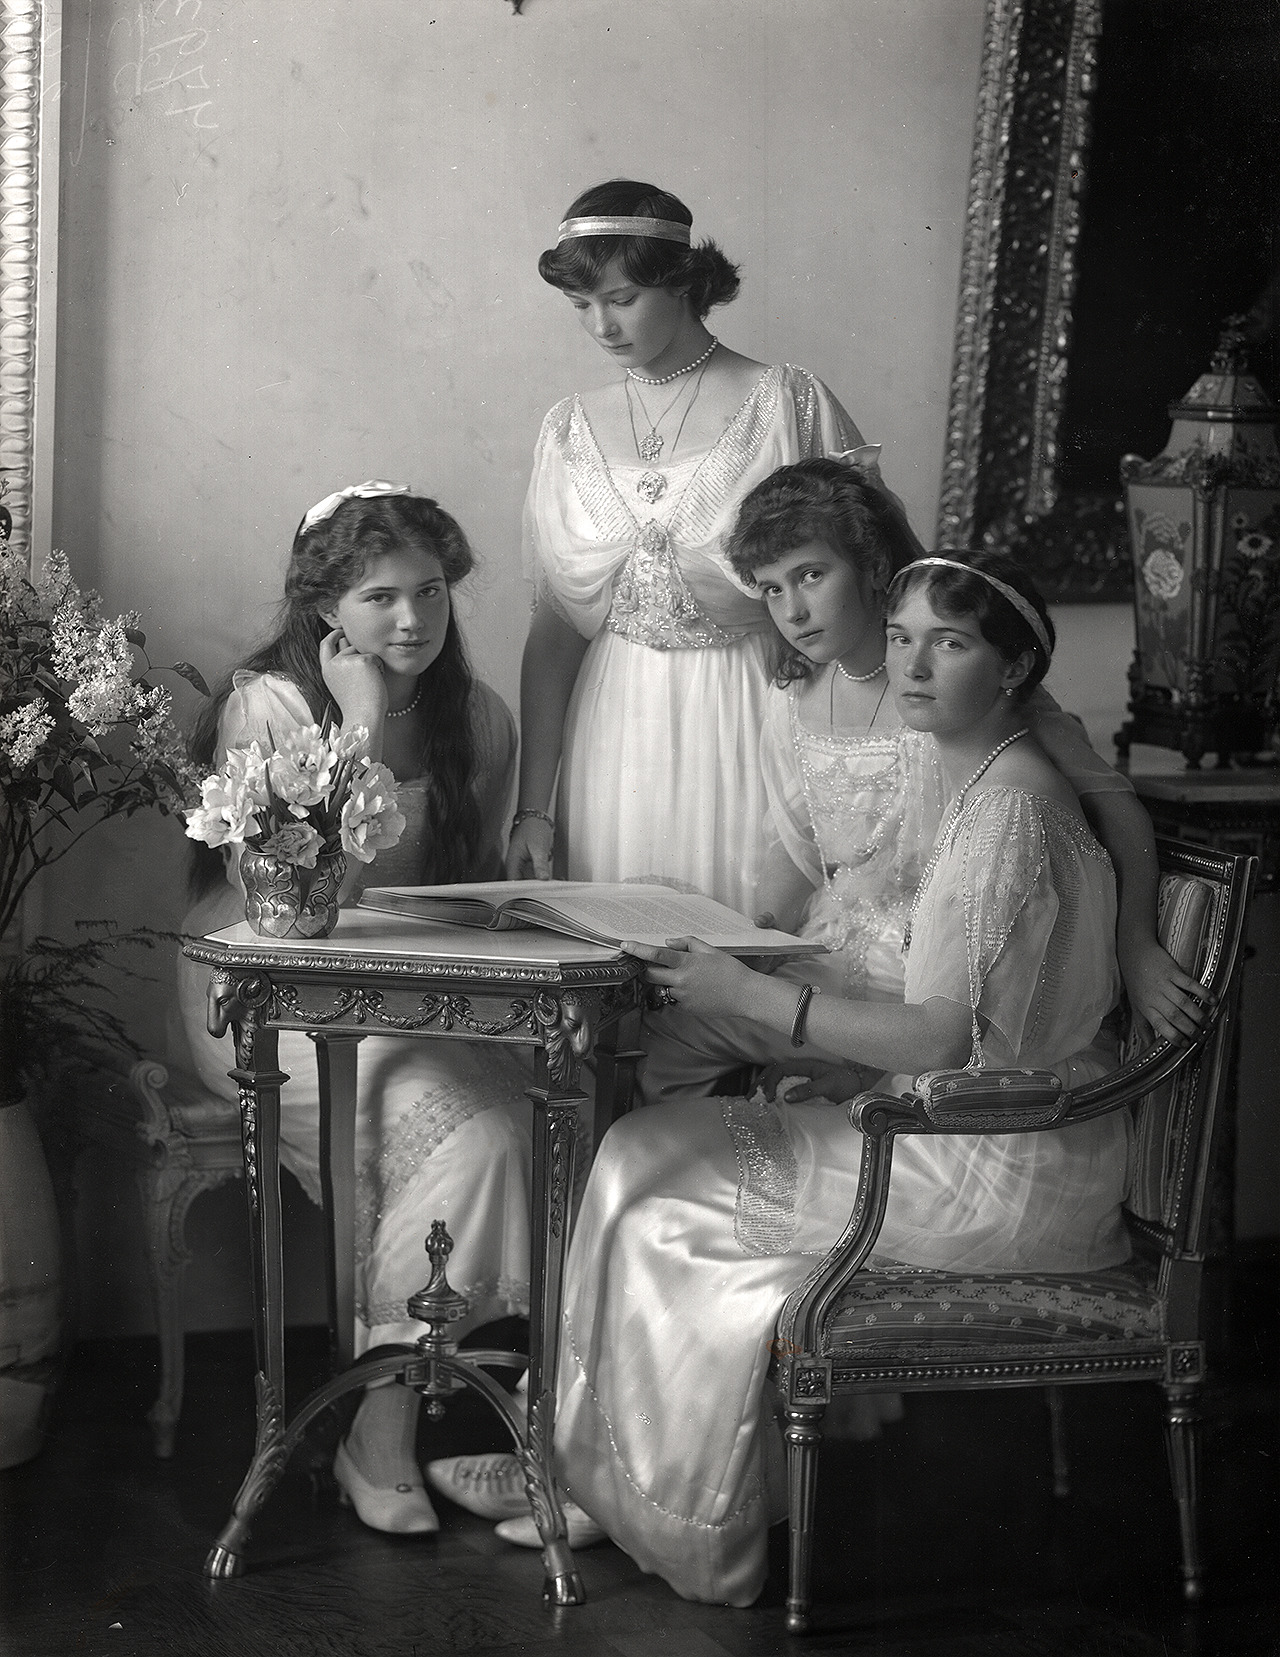 The daughters of Emperor Nicholas II, 1914